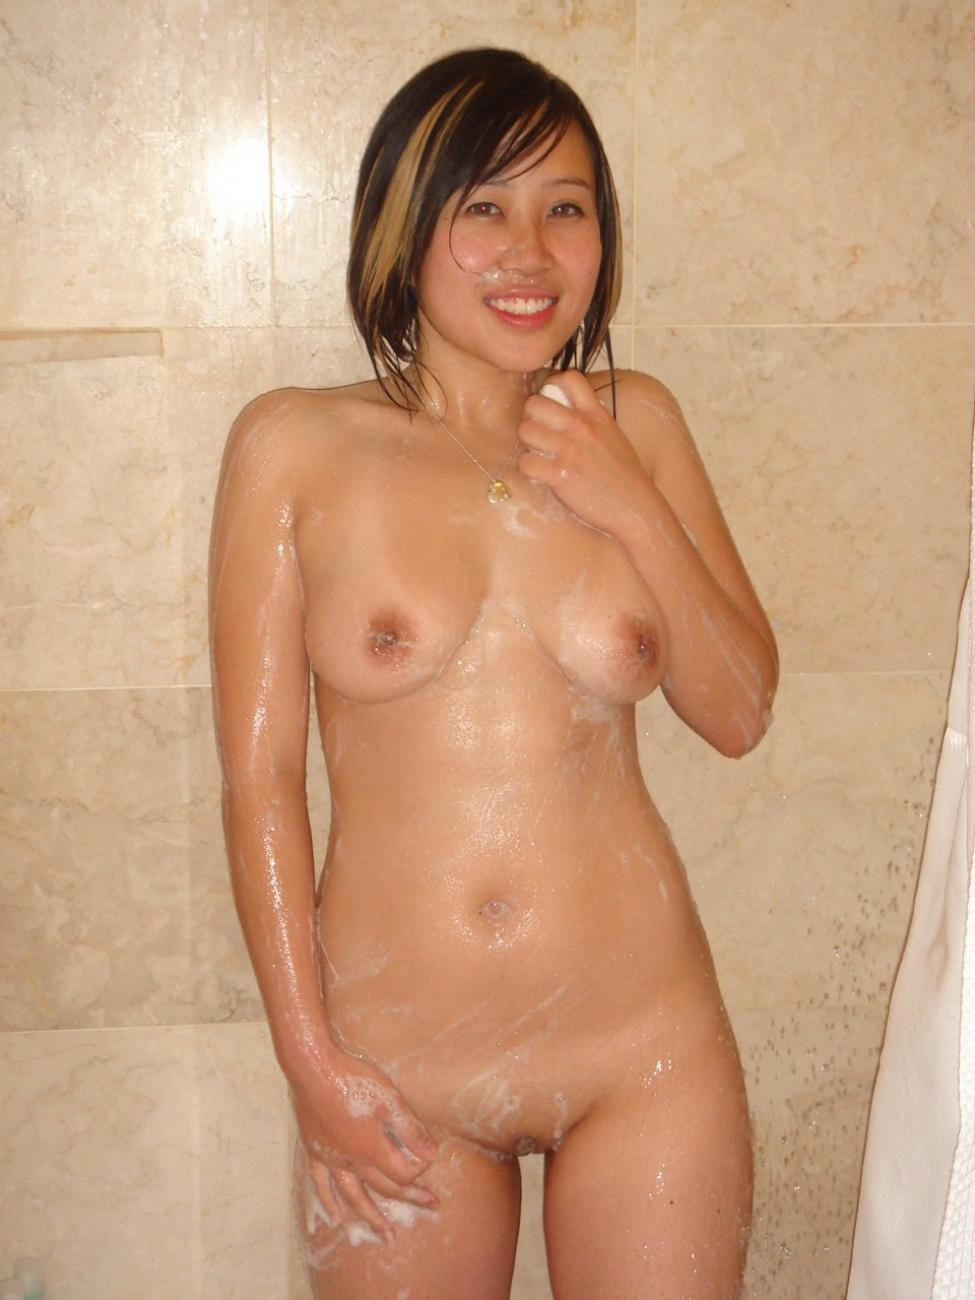 Amateur asian hotties getting down and dirty for a little poon-tang ...